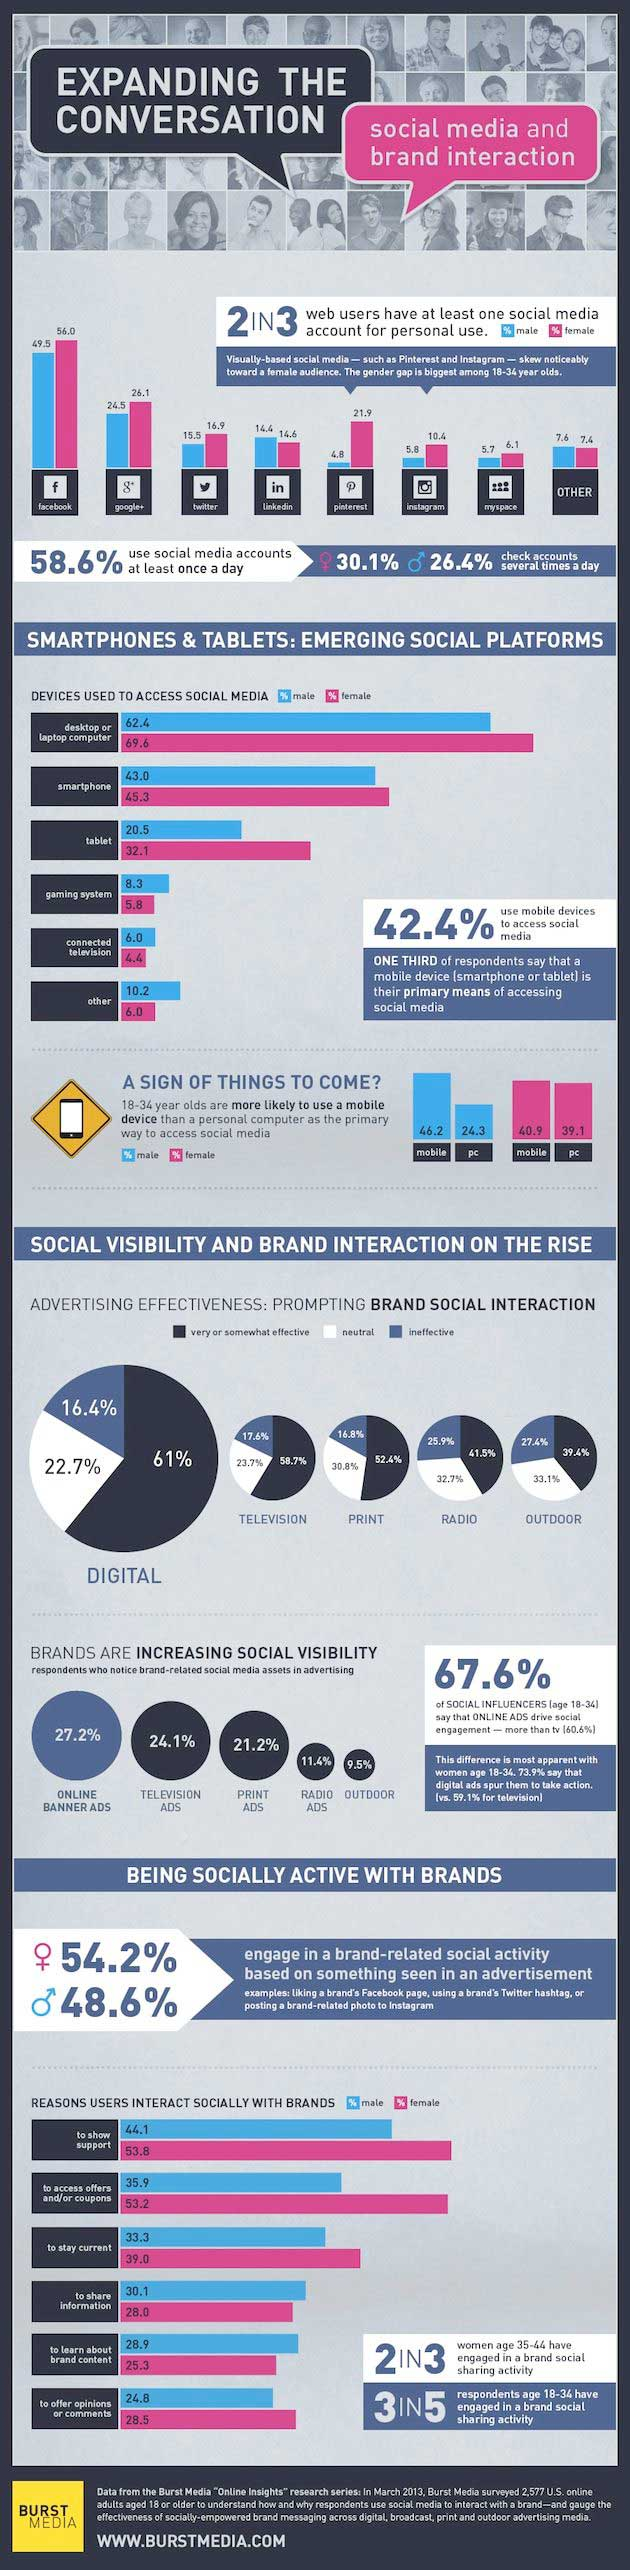 Effectiveness of Social Media Cues in Ads [Infographic]